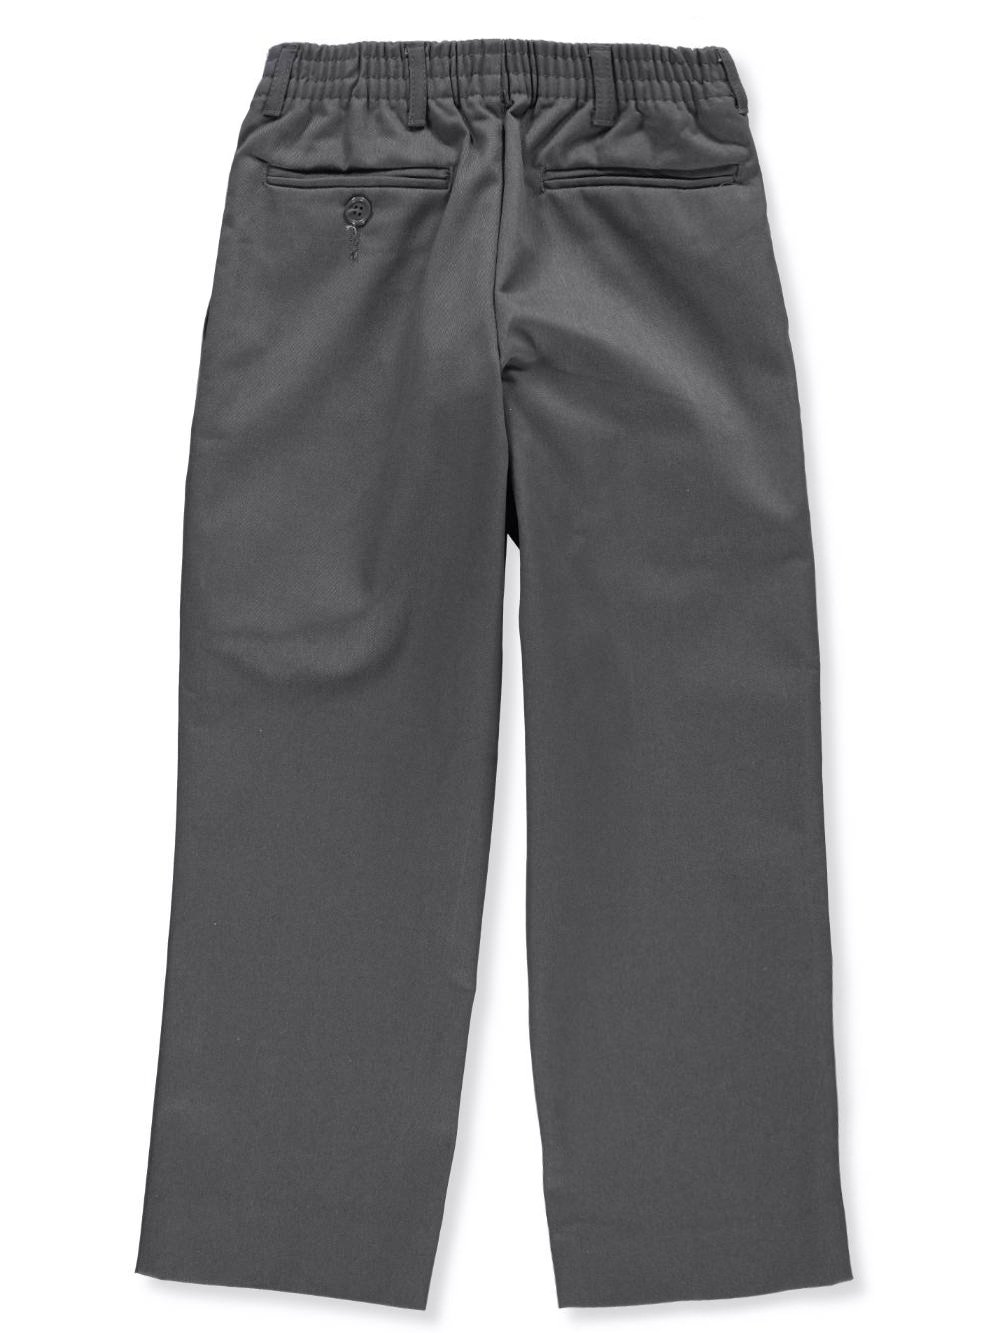 Rifle Big Boys' Pleated Pants with Elastic Waist